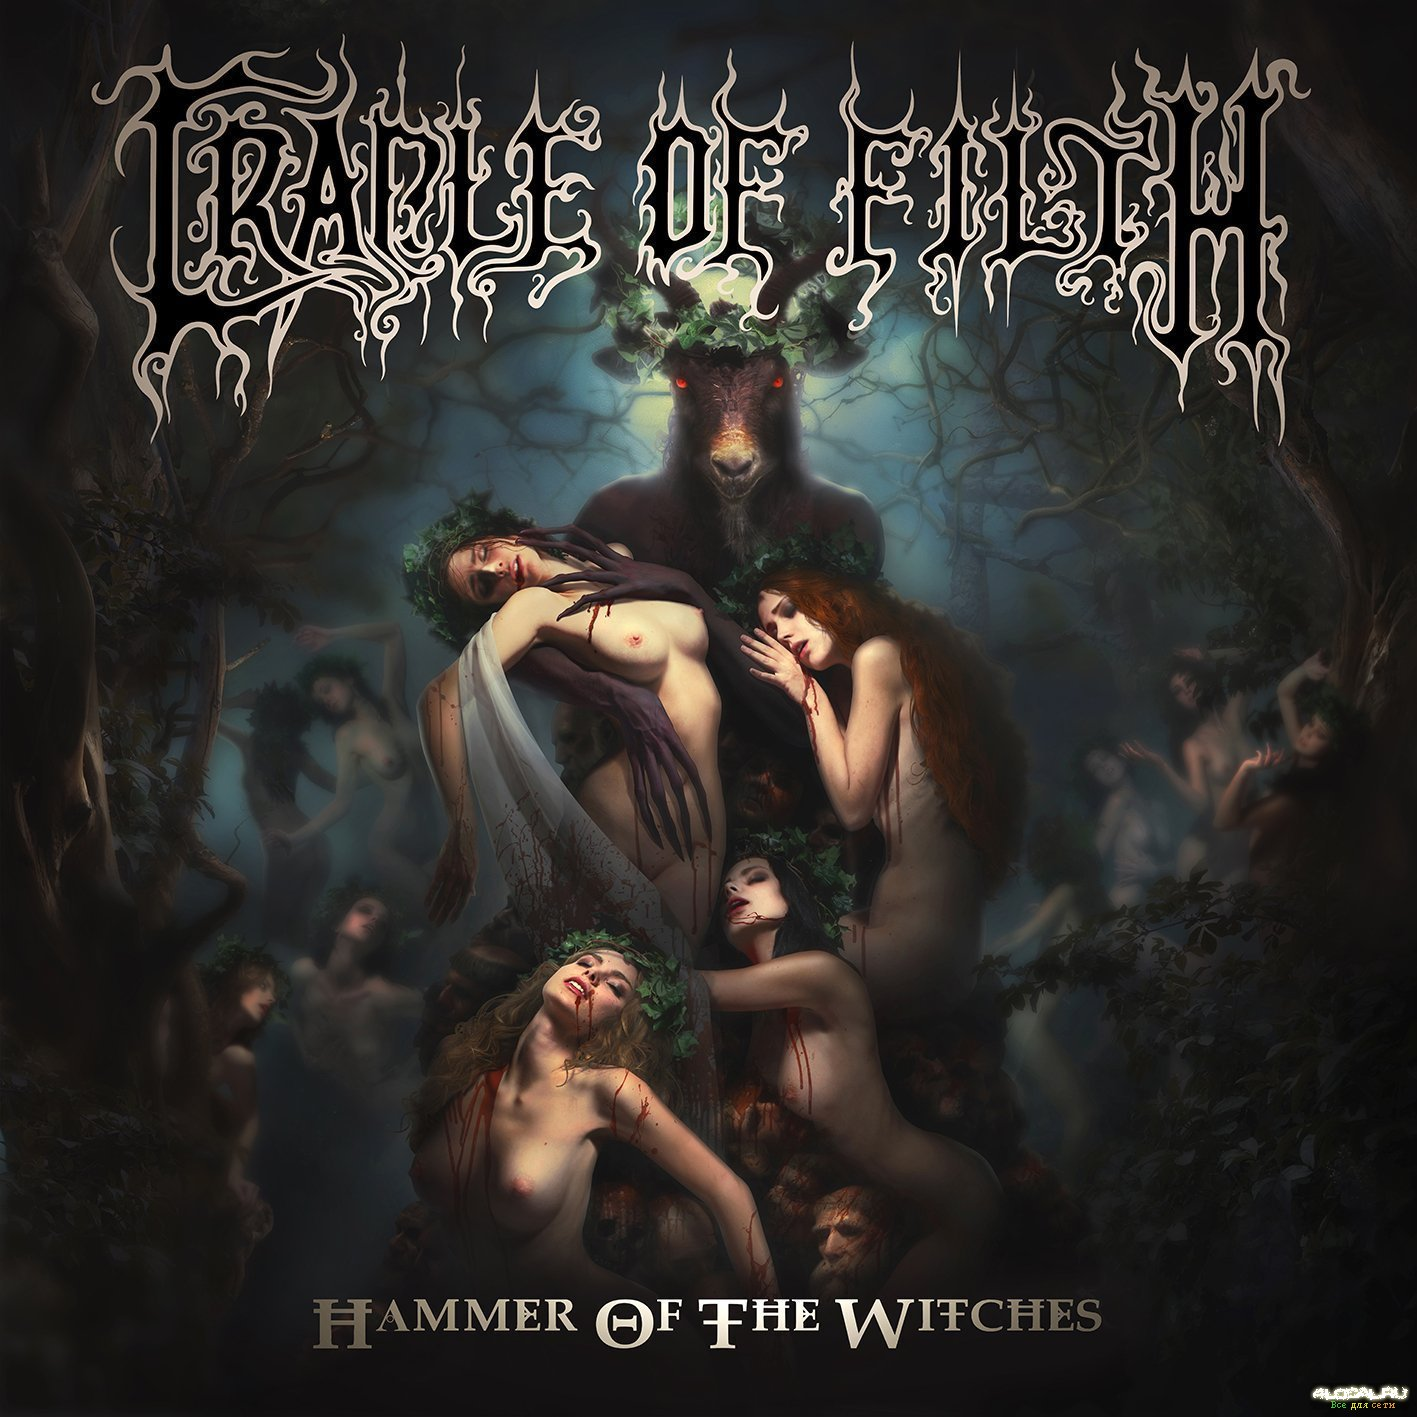 Cradle of Filth – Hammer of the Witches Review